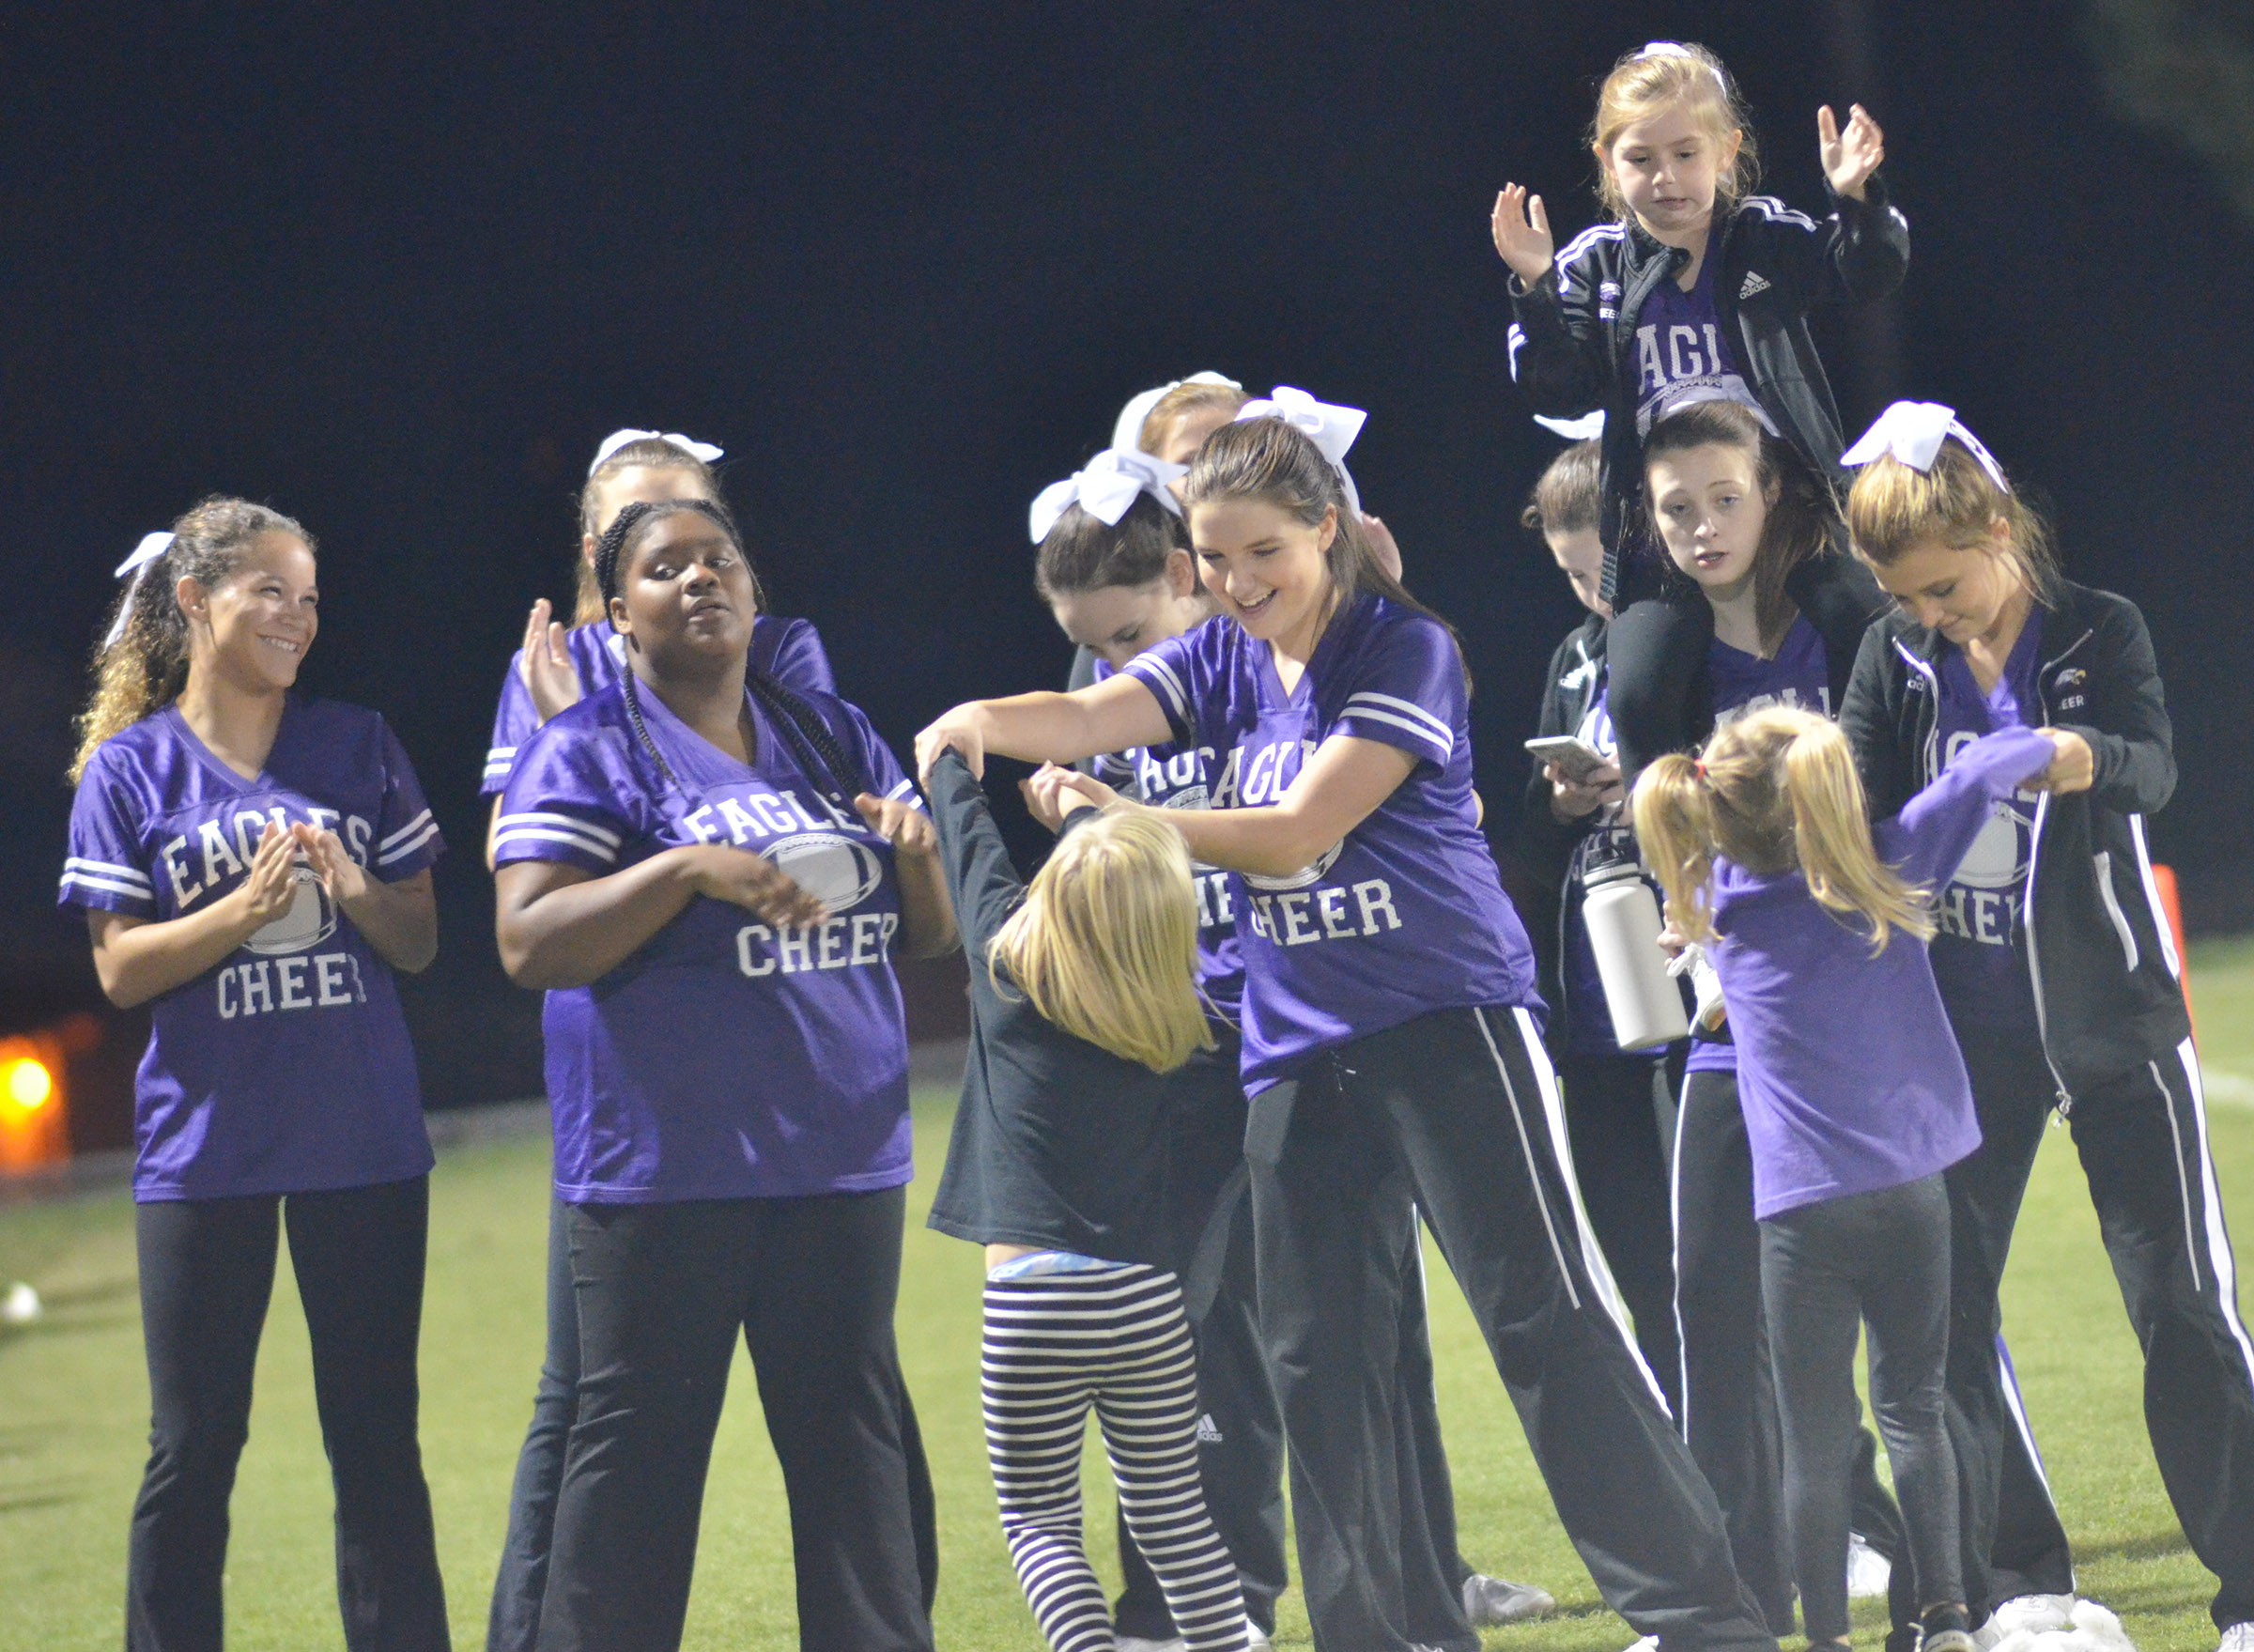 CHS cheerleaders dance during halftime.